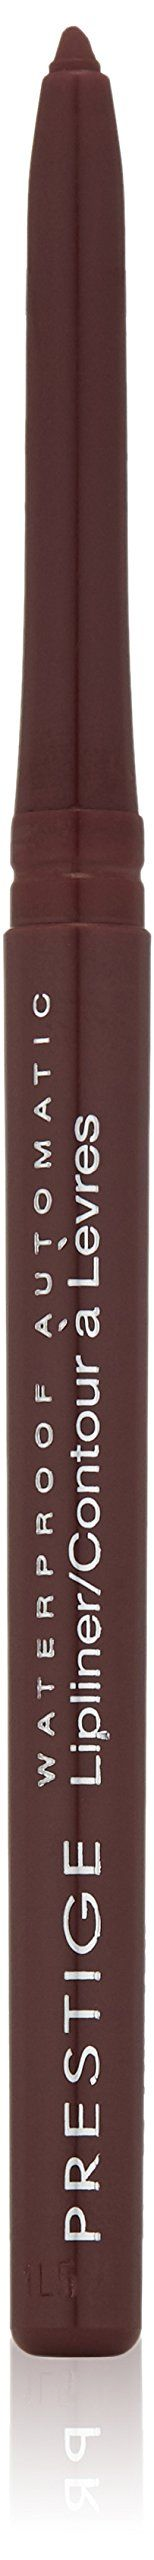 Prestige Cosmetics Waterproof Automatic Lipliner, Lullaby, 0.009 Ounce. Waterproof. Retractable. Never needs sharpening. Smooth application. Long lasting wear.